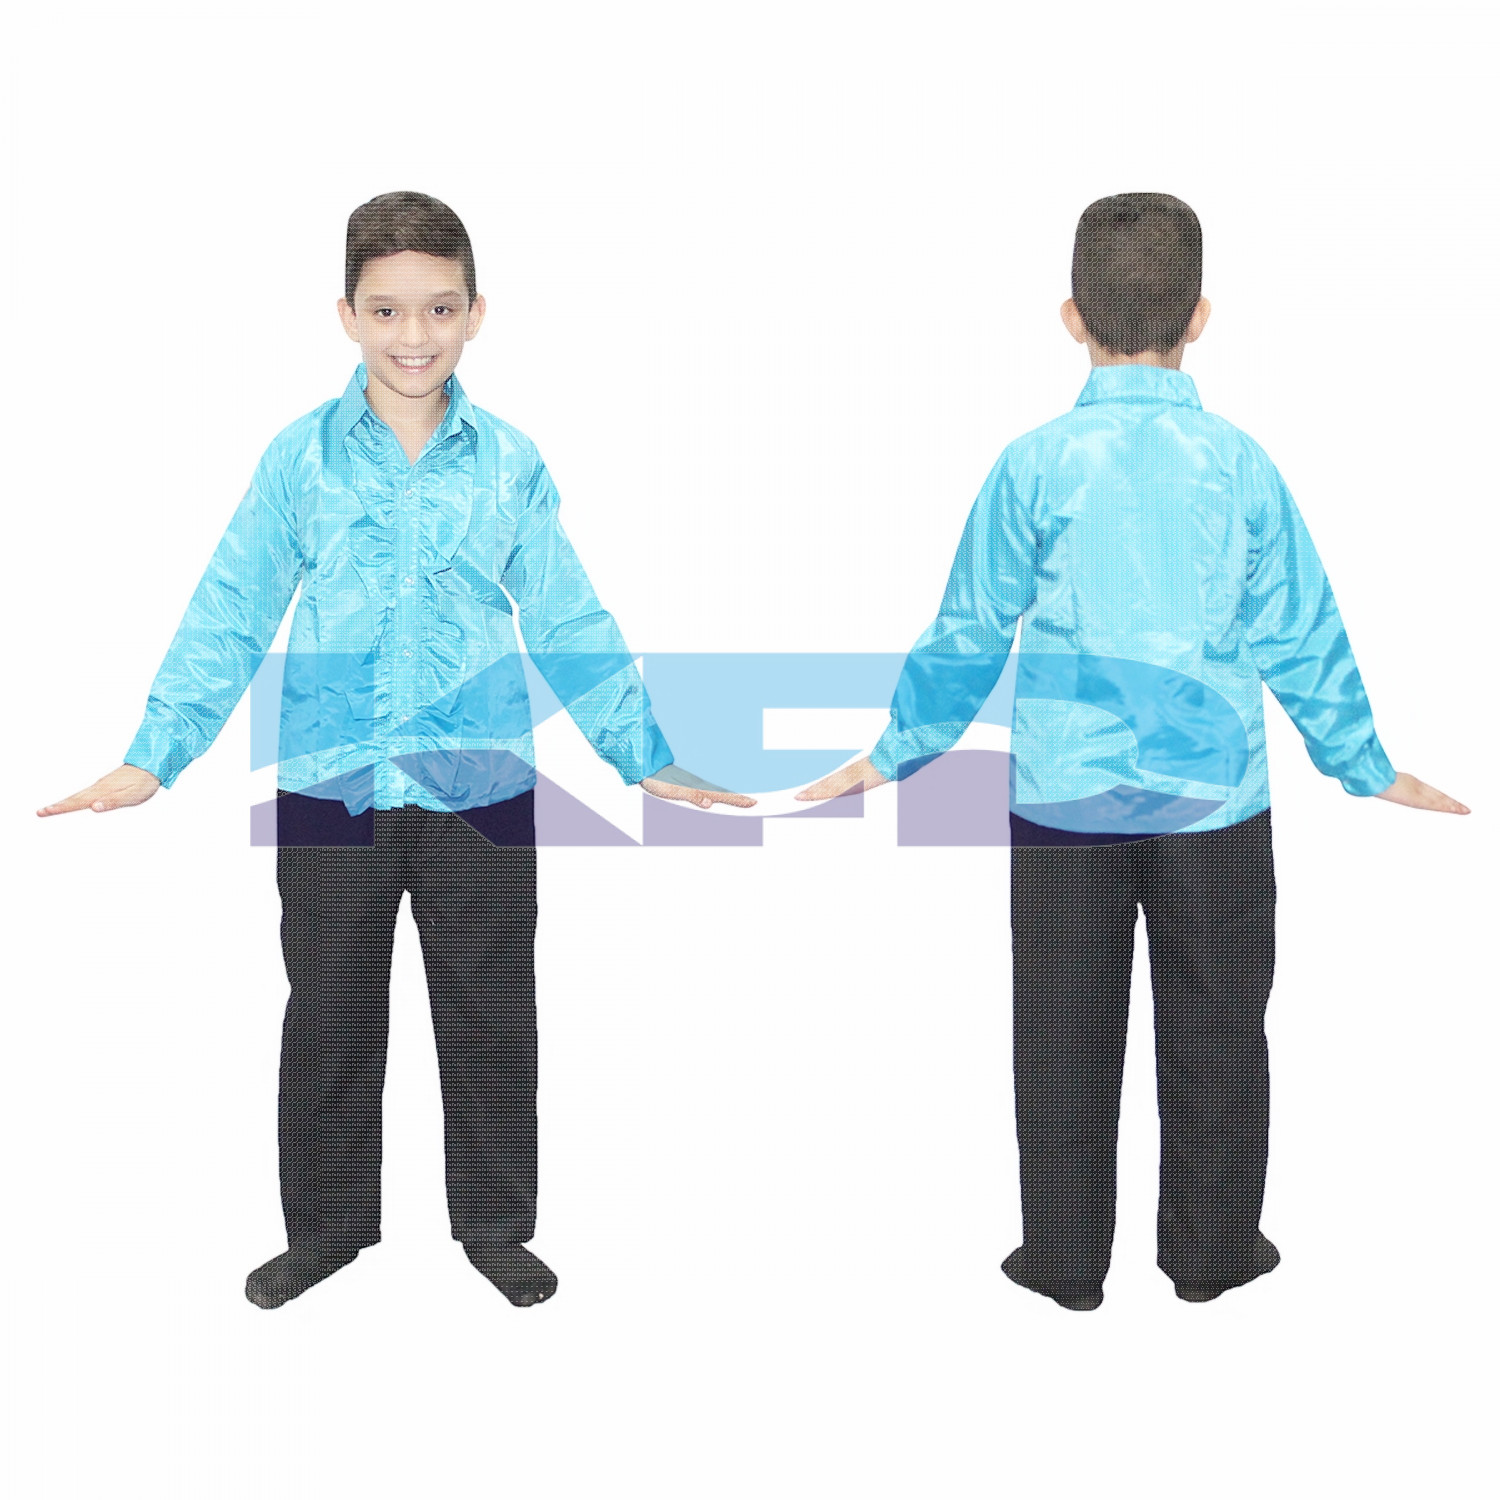 Firozi Frill Shirt fancy dress for kids,Western Costume for Annual function/Theme Party/Competition/Stage Shows/Birthday Party Dress laten dance/salsa dance